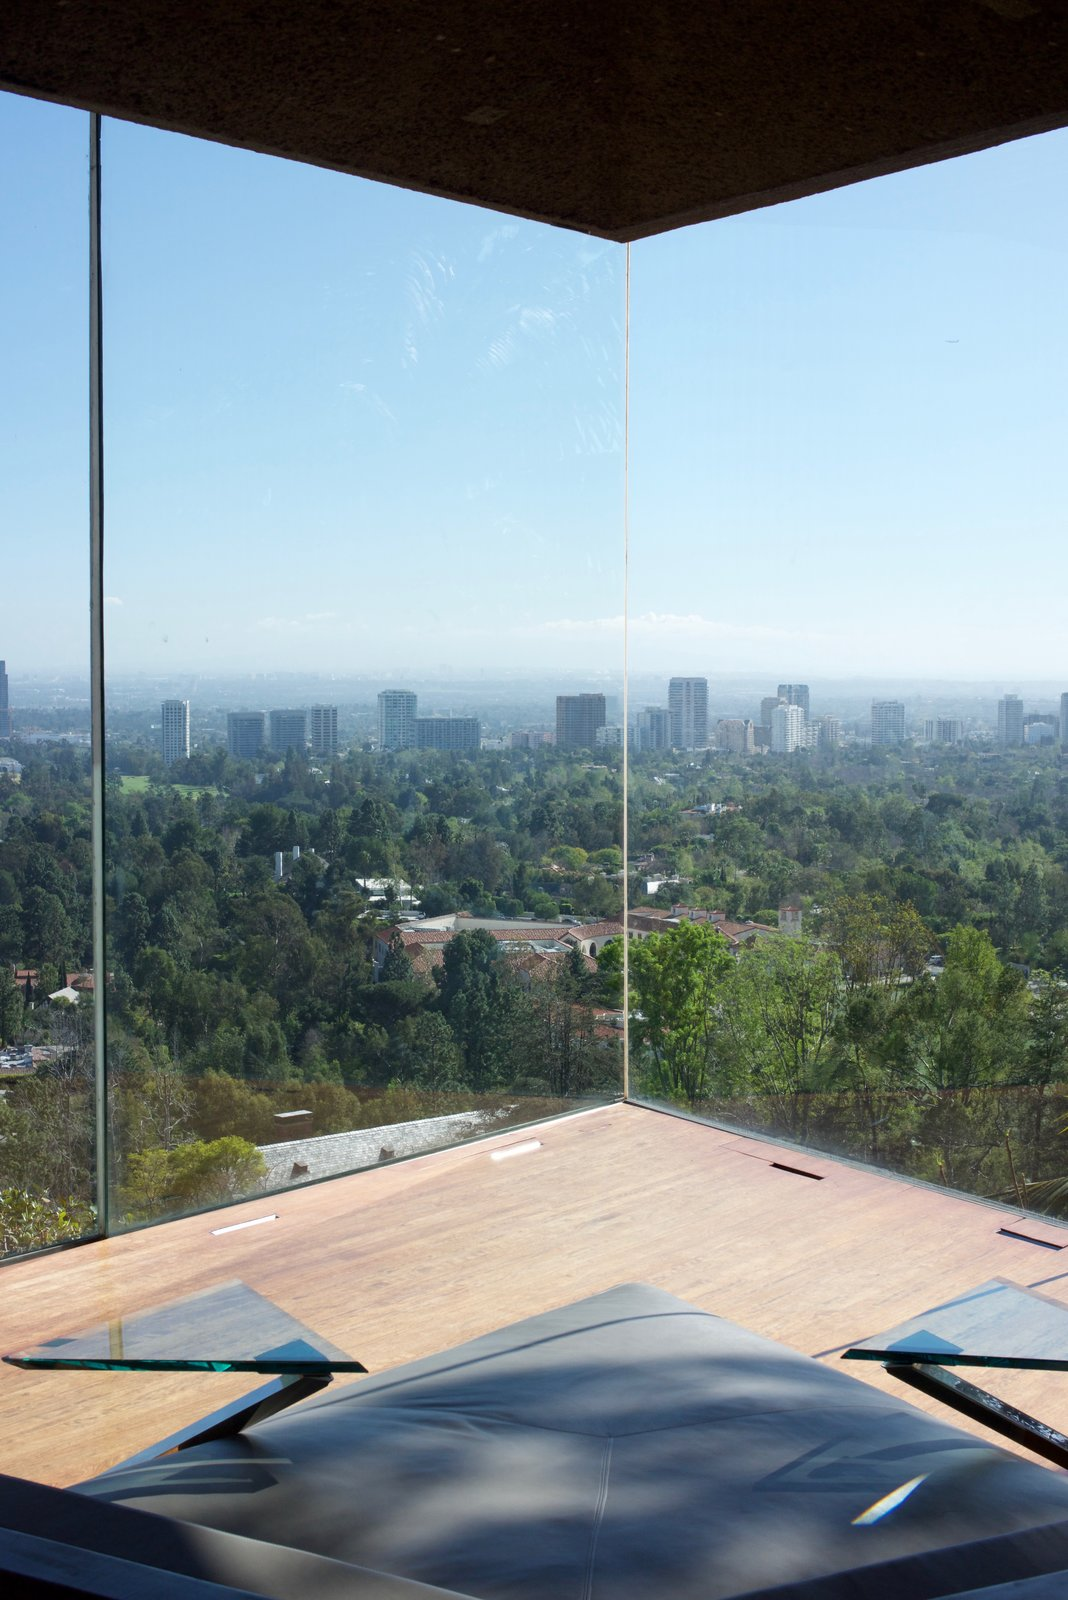 The bedroom holds custom gray leather lounging beds with angular side tables made of glass and steel.  Behind the Scenes at John Lautner's Sheats-Goldstein Residence